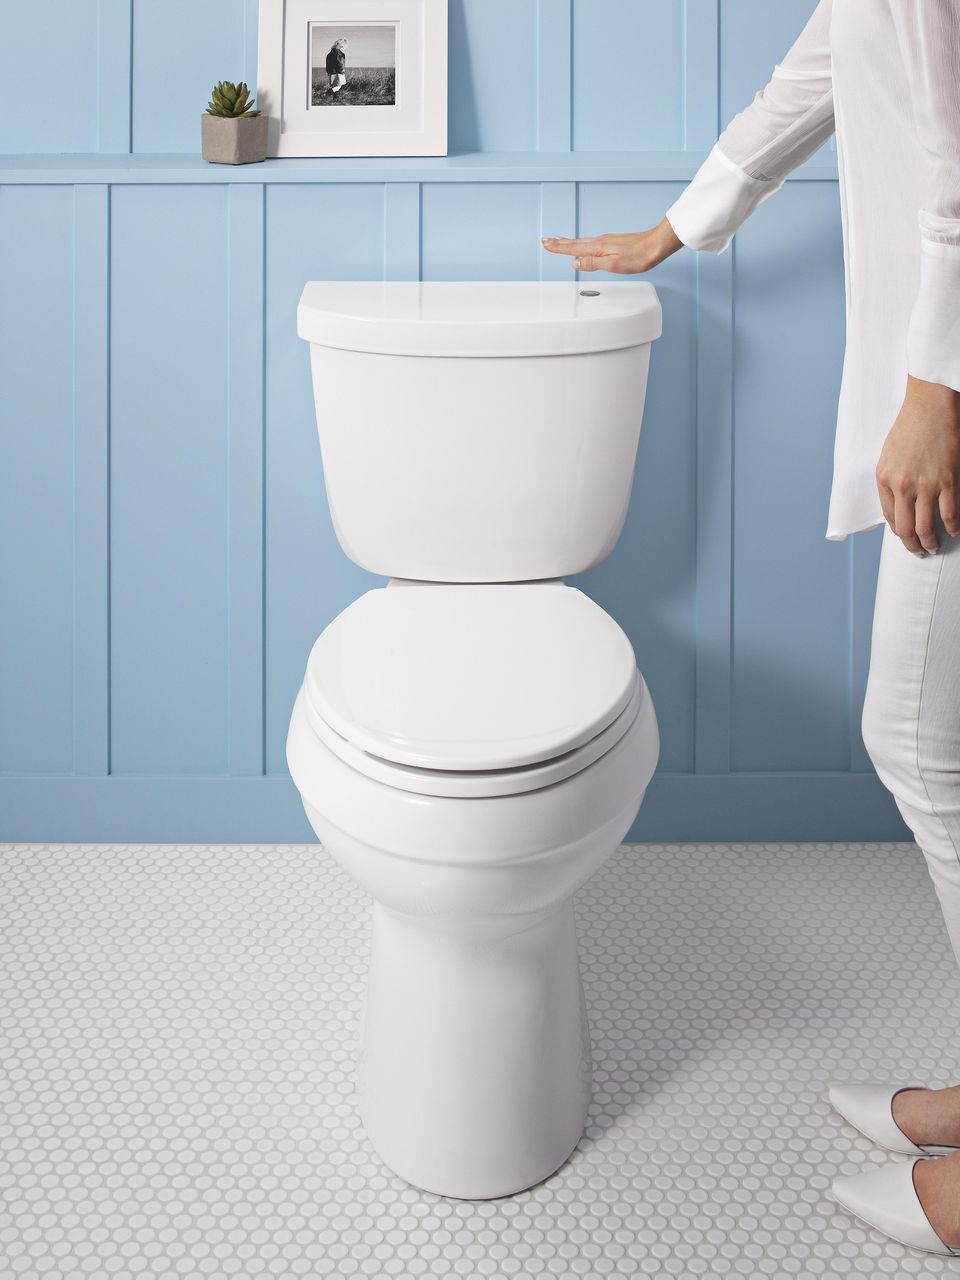 Inspirational Kohler touchless toilet Kit